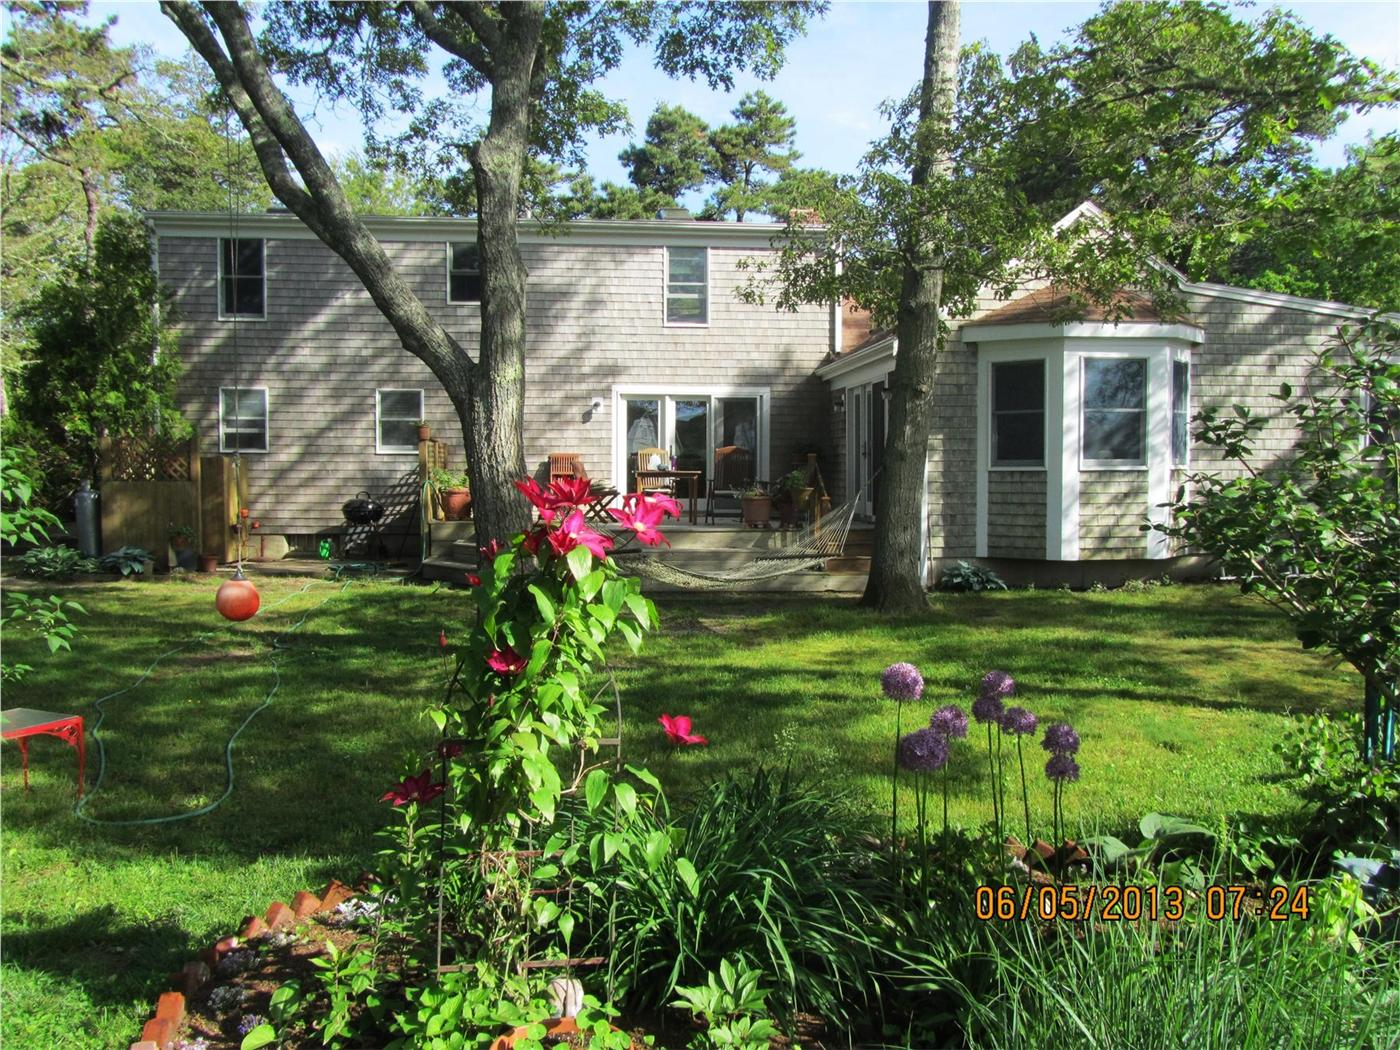 Chatham Vacation Rental Home In Cape Cod Ma 02633 5